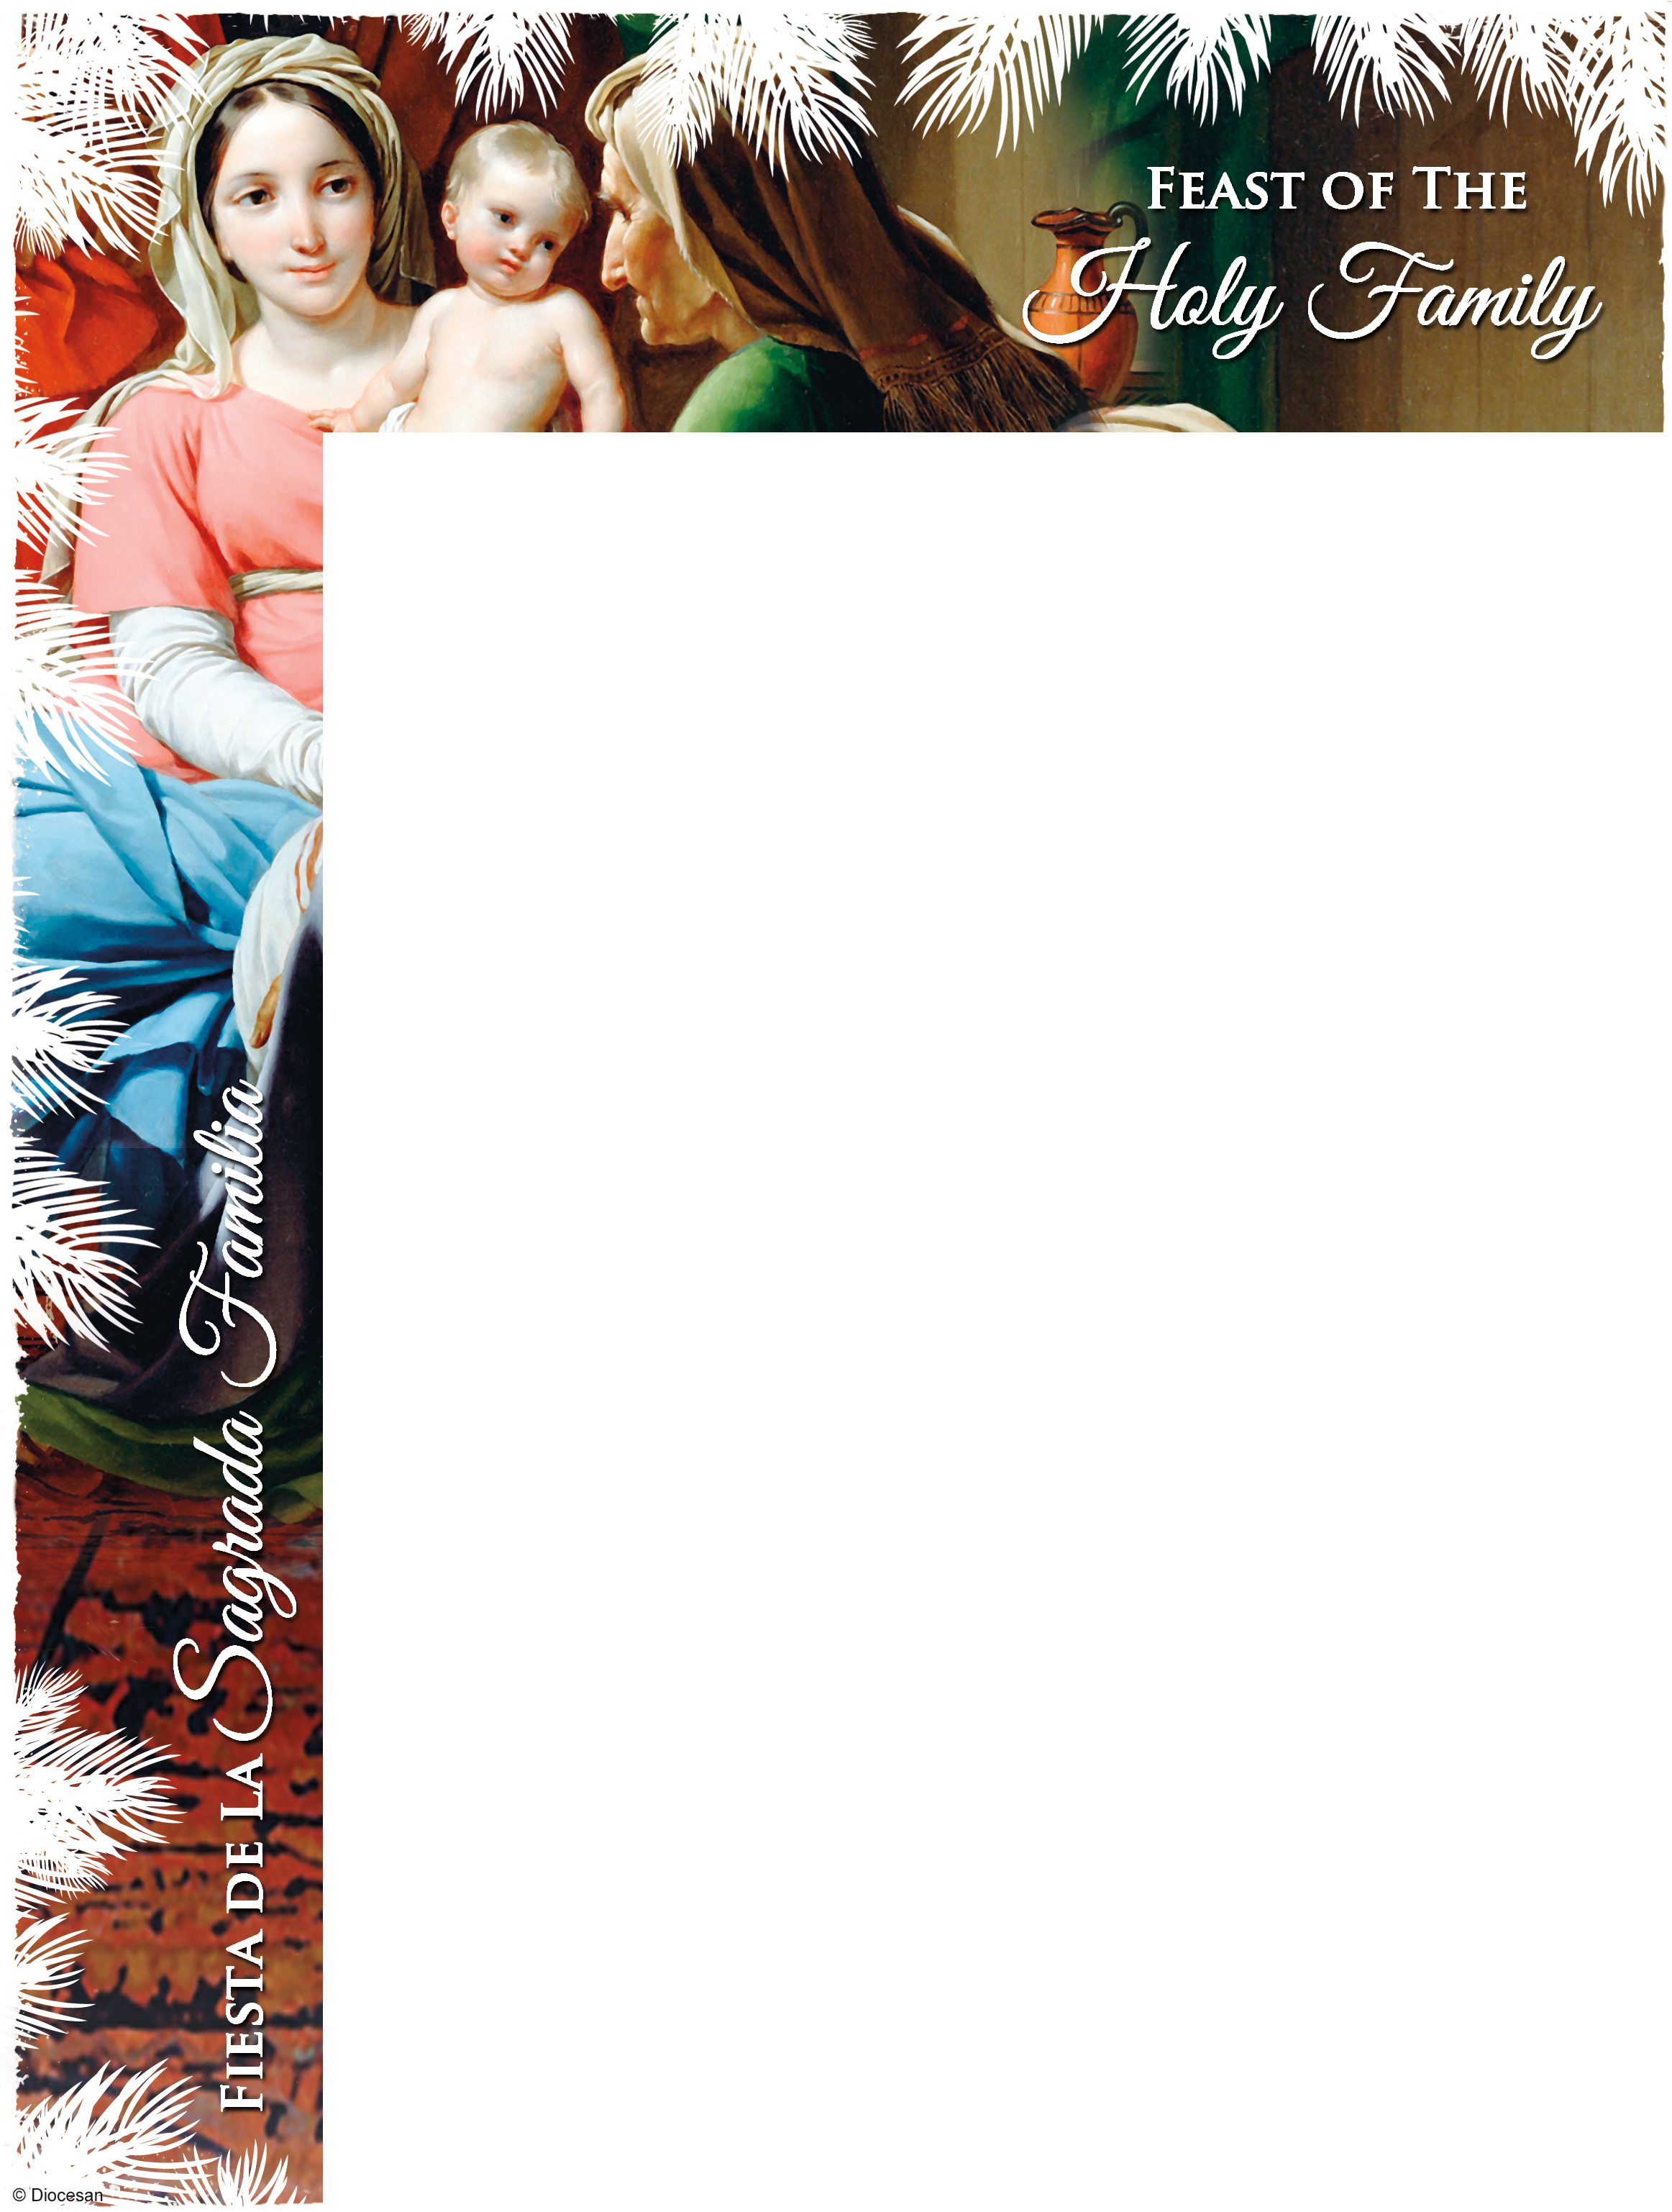 Feast of the Holy Family Bilingual Wrapper